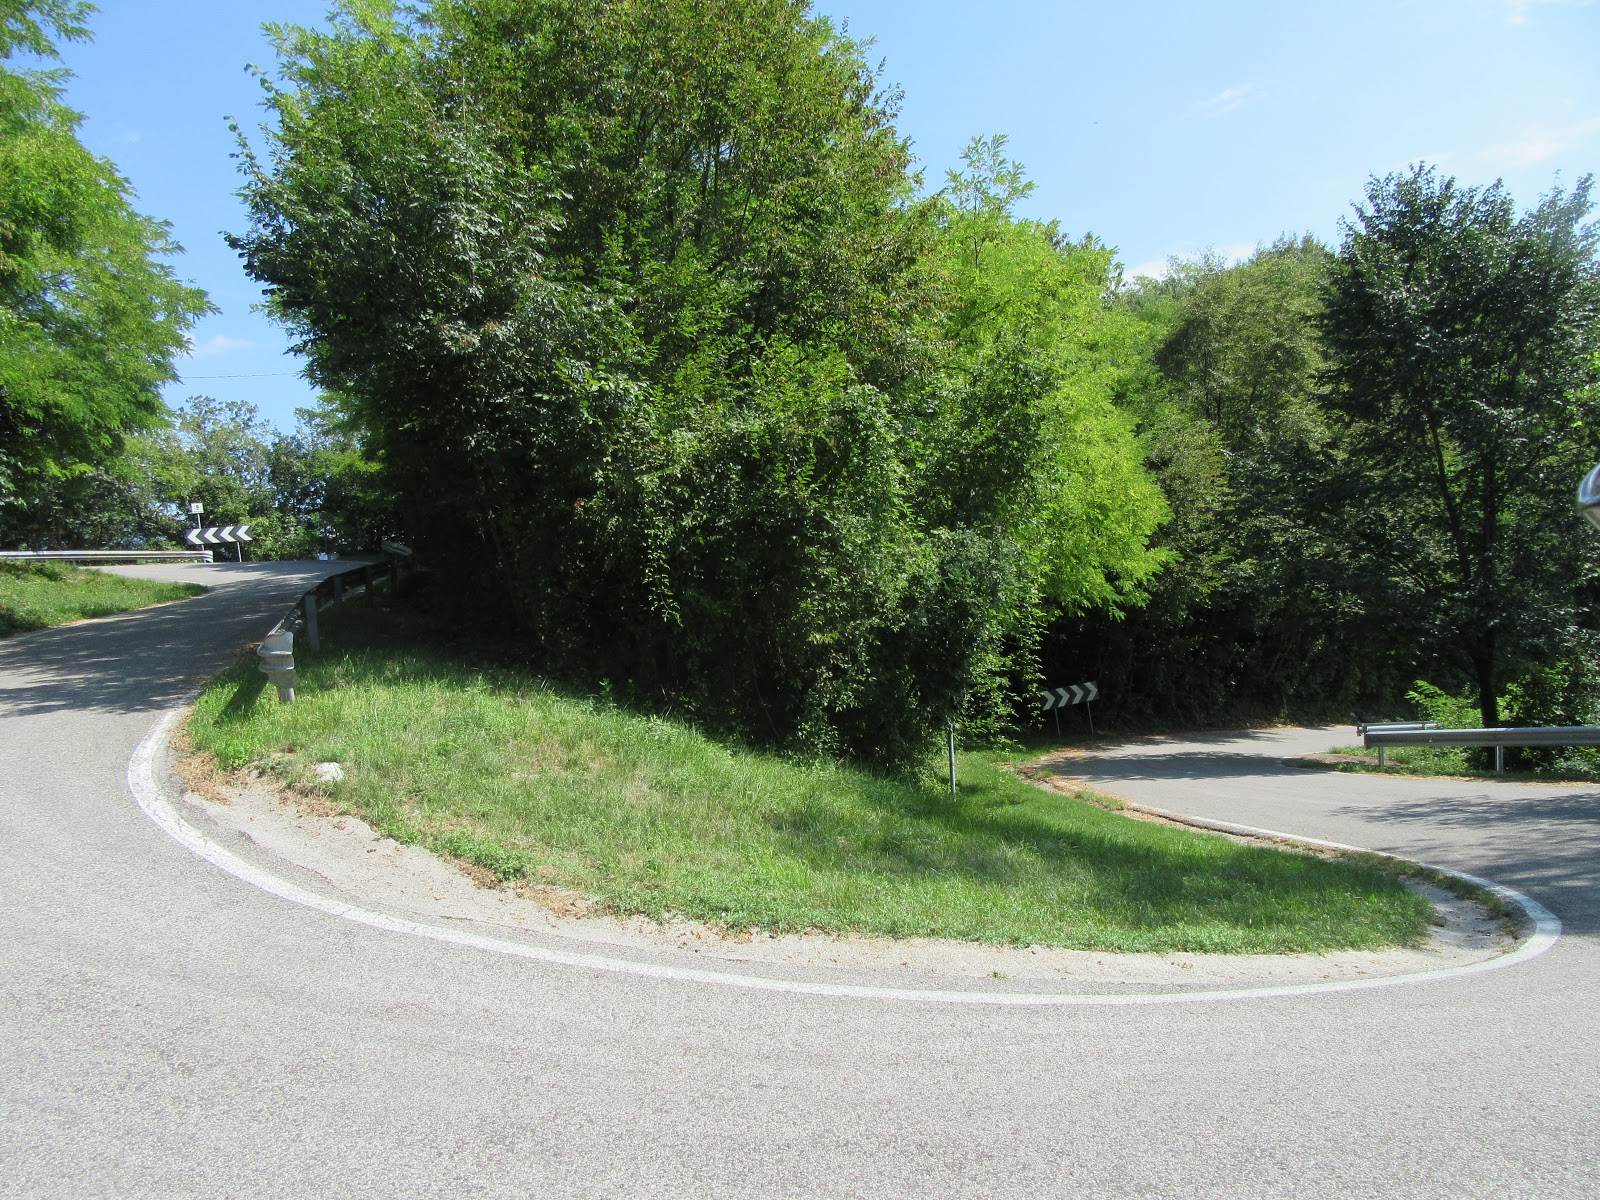 Climbing Monte Grappa from Possagno - tornante 10 - roadway and hairpin